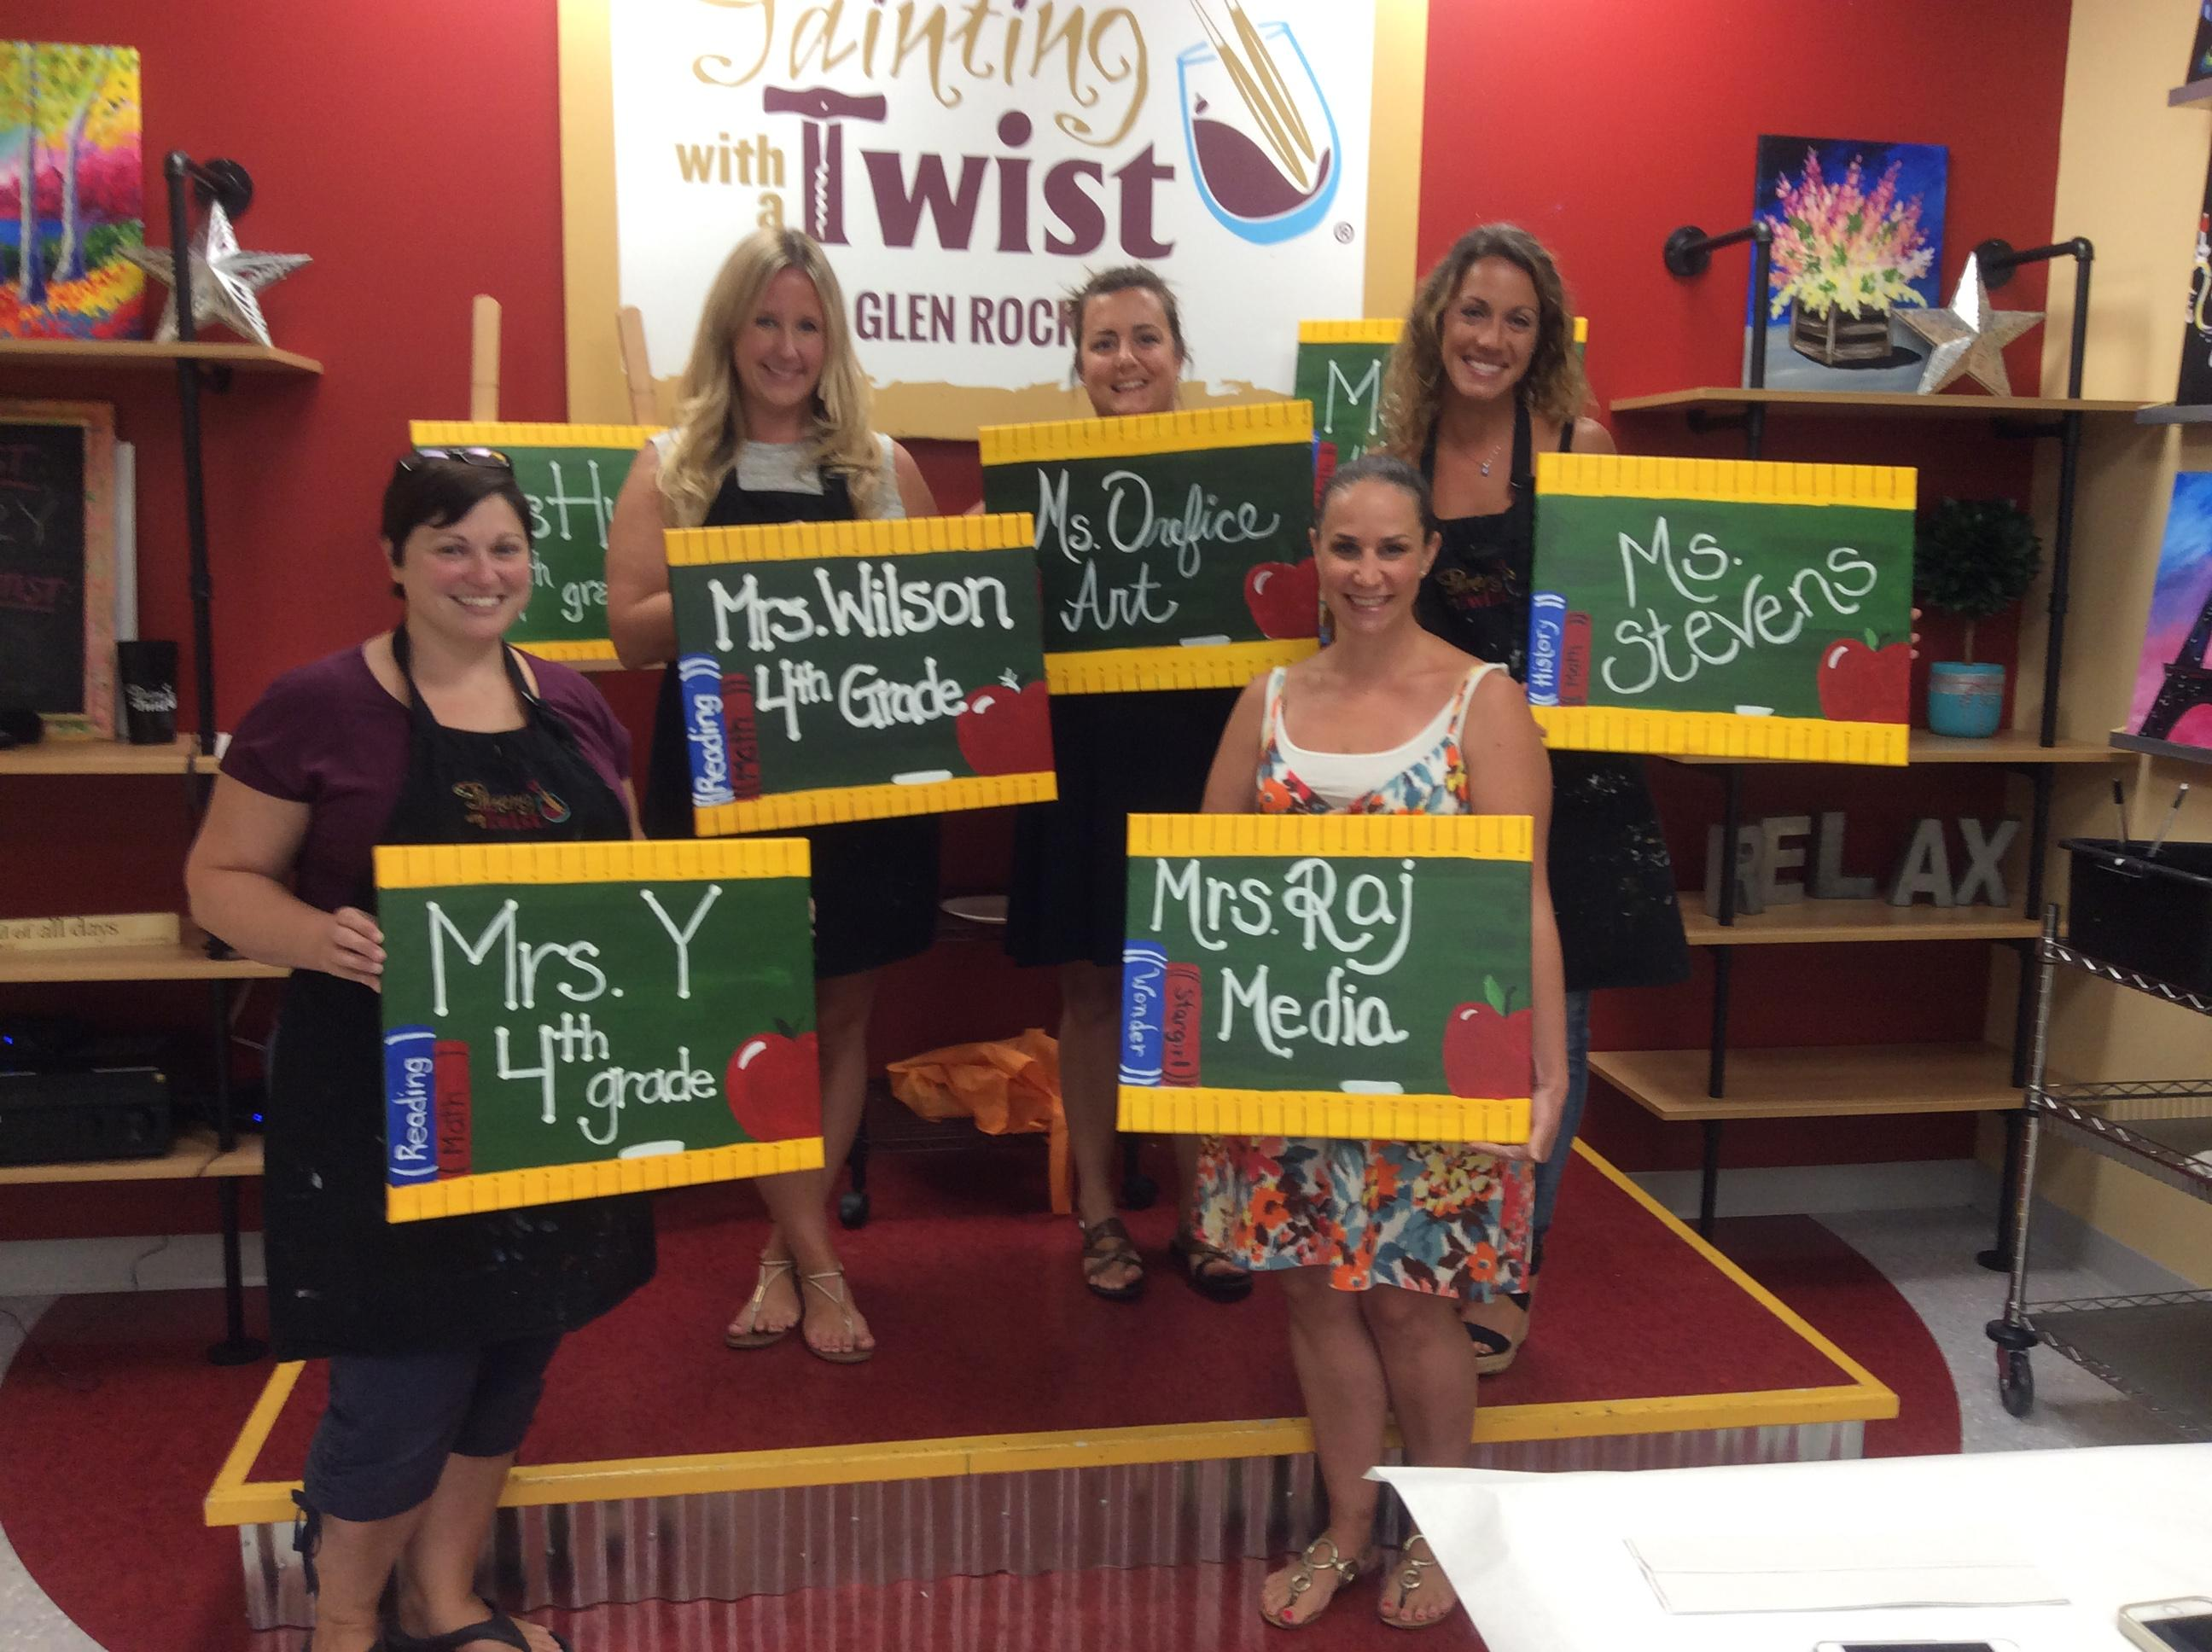 Painting with a twist coupons near me in glen rock 8coupons for Painting with a twist chicago